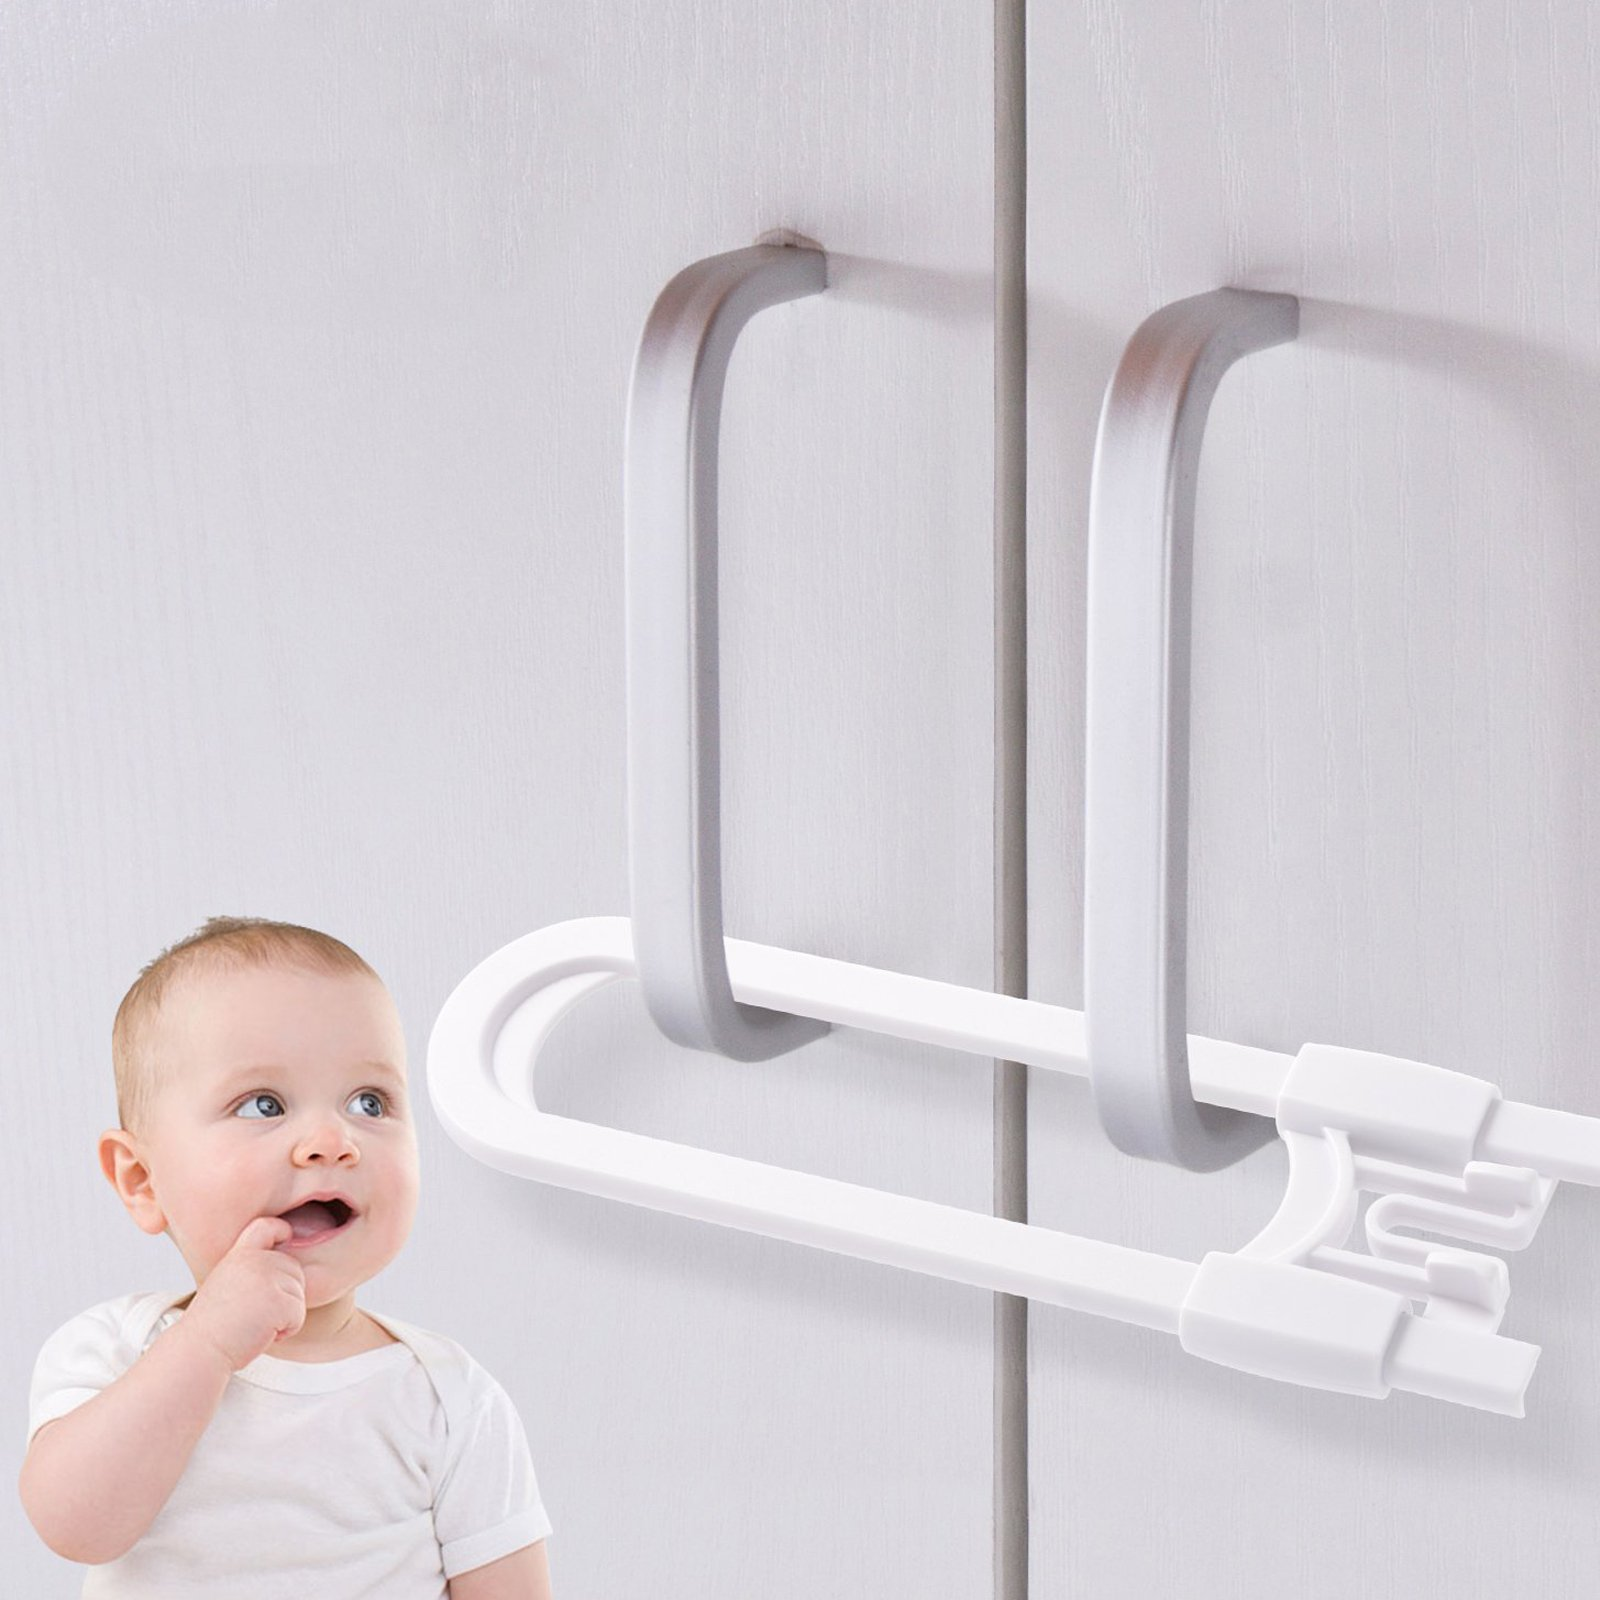 10 Pack Baby Proofing Cabinet Locks, U-Shaped Sliding Child Safety Cabinet Locks Latches for Knobs and Handles